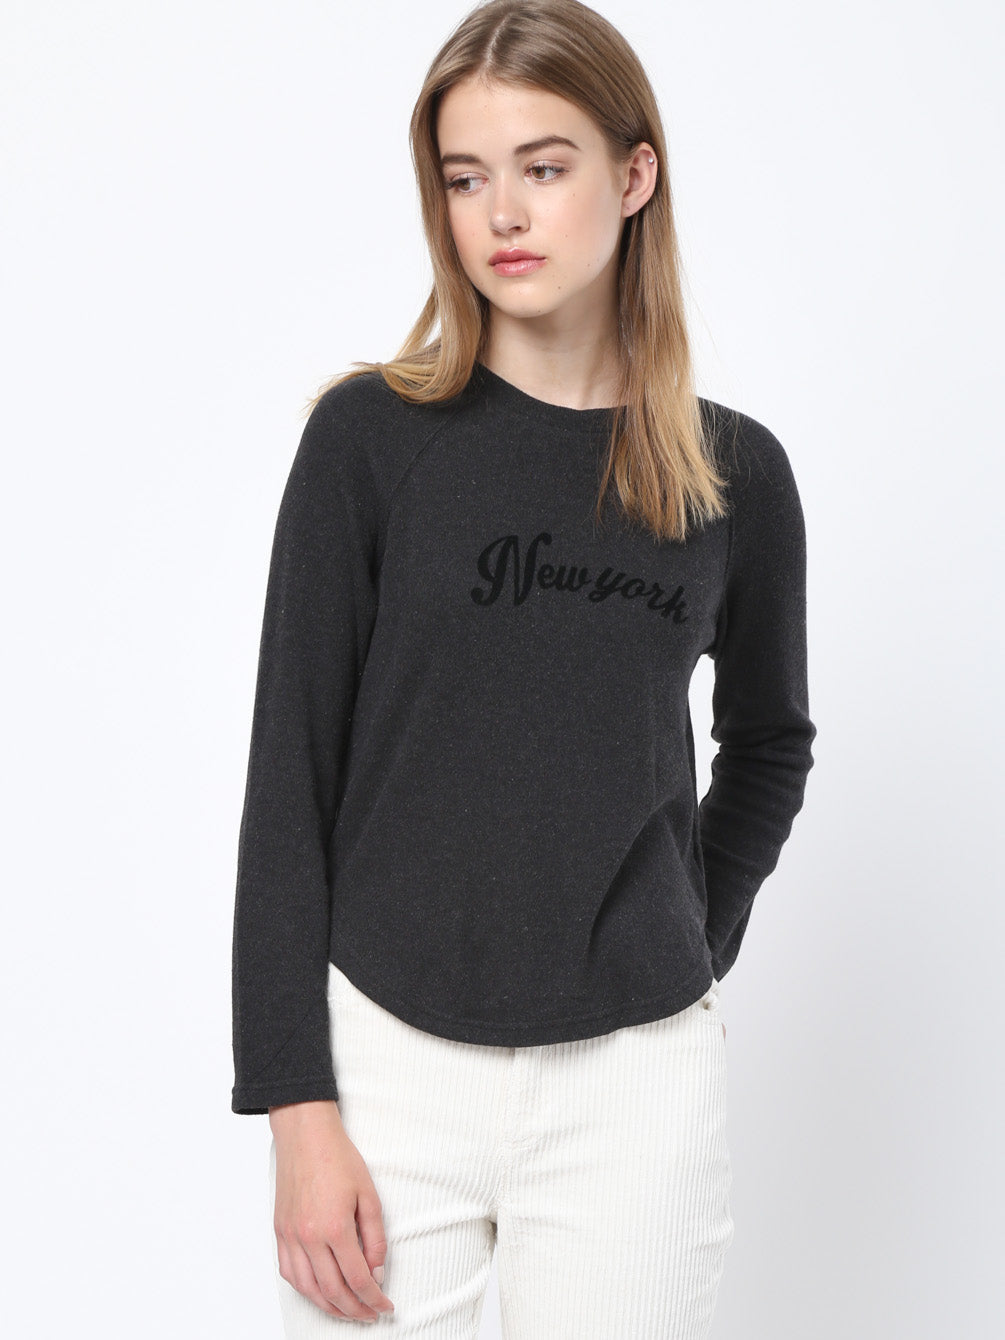 The 'New York' Sweatshirt